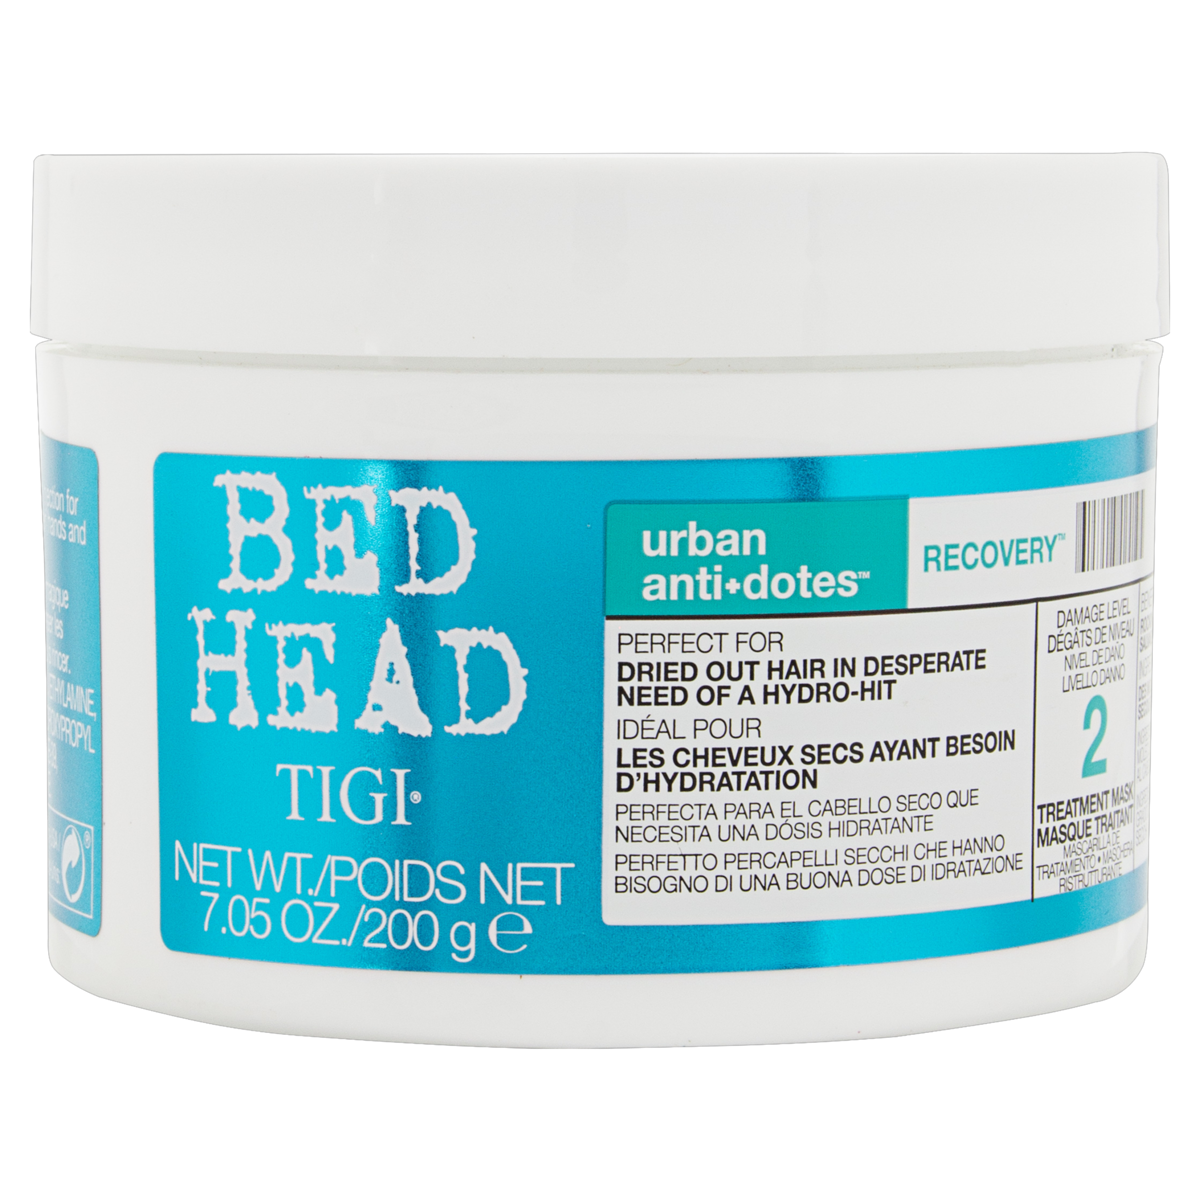 0615908424195 - MÁSCARA CONDICIONANTE BED HEAD TIGI URBAN ANTI+DOTES RECOVERY POTE 200G